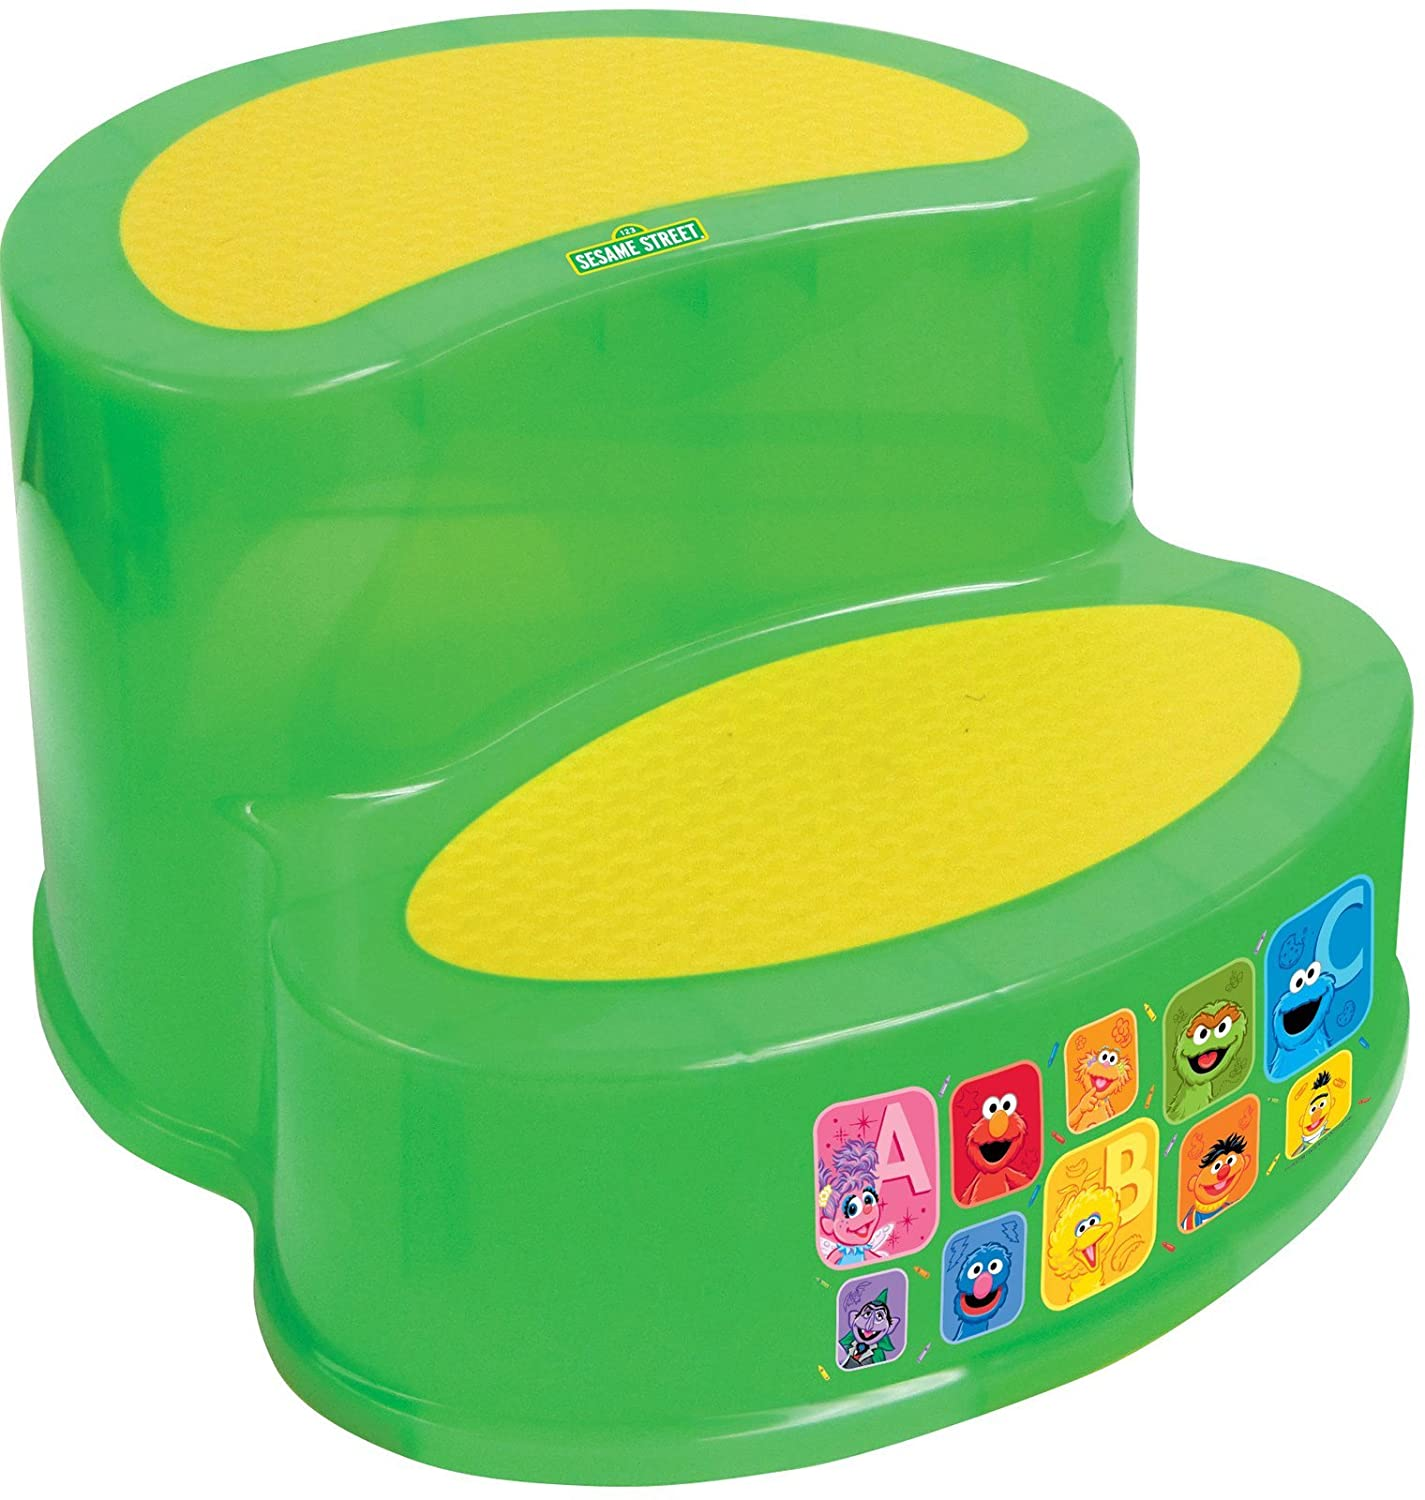 Sesame Street Two-Tier Step Stool, Green Ginsey 69132